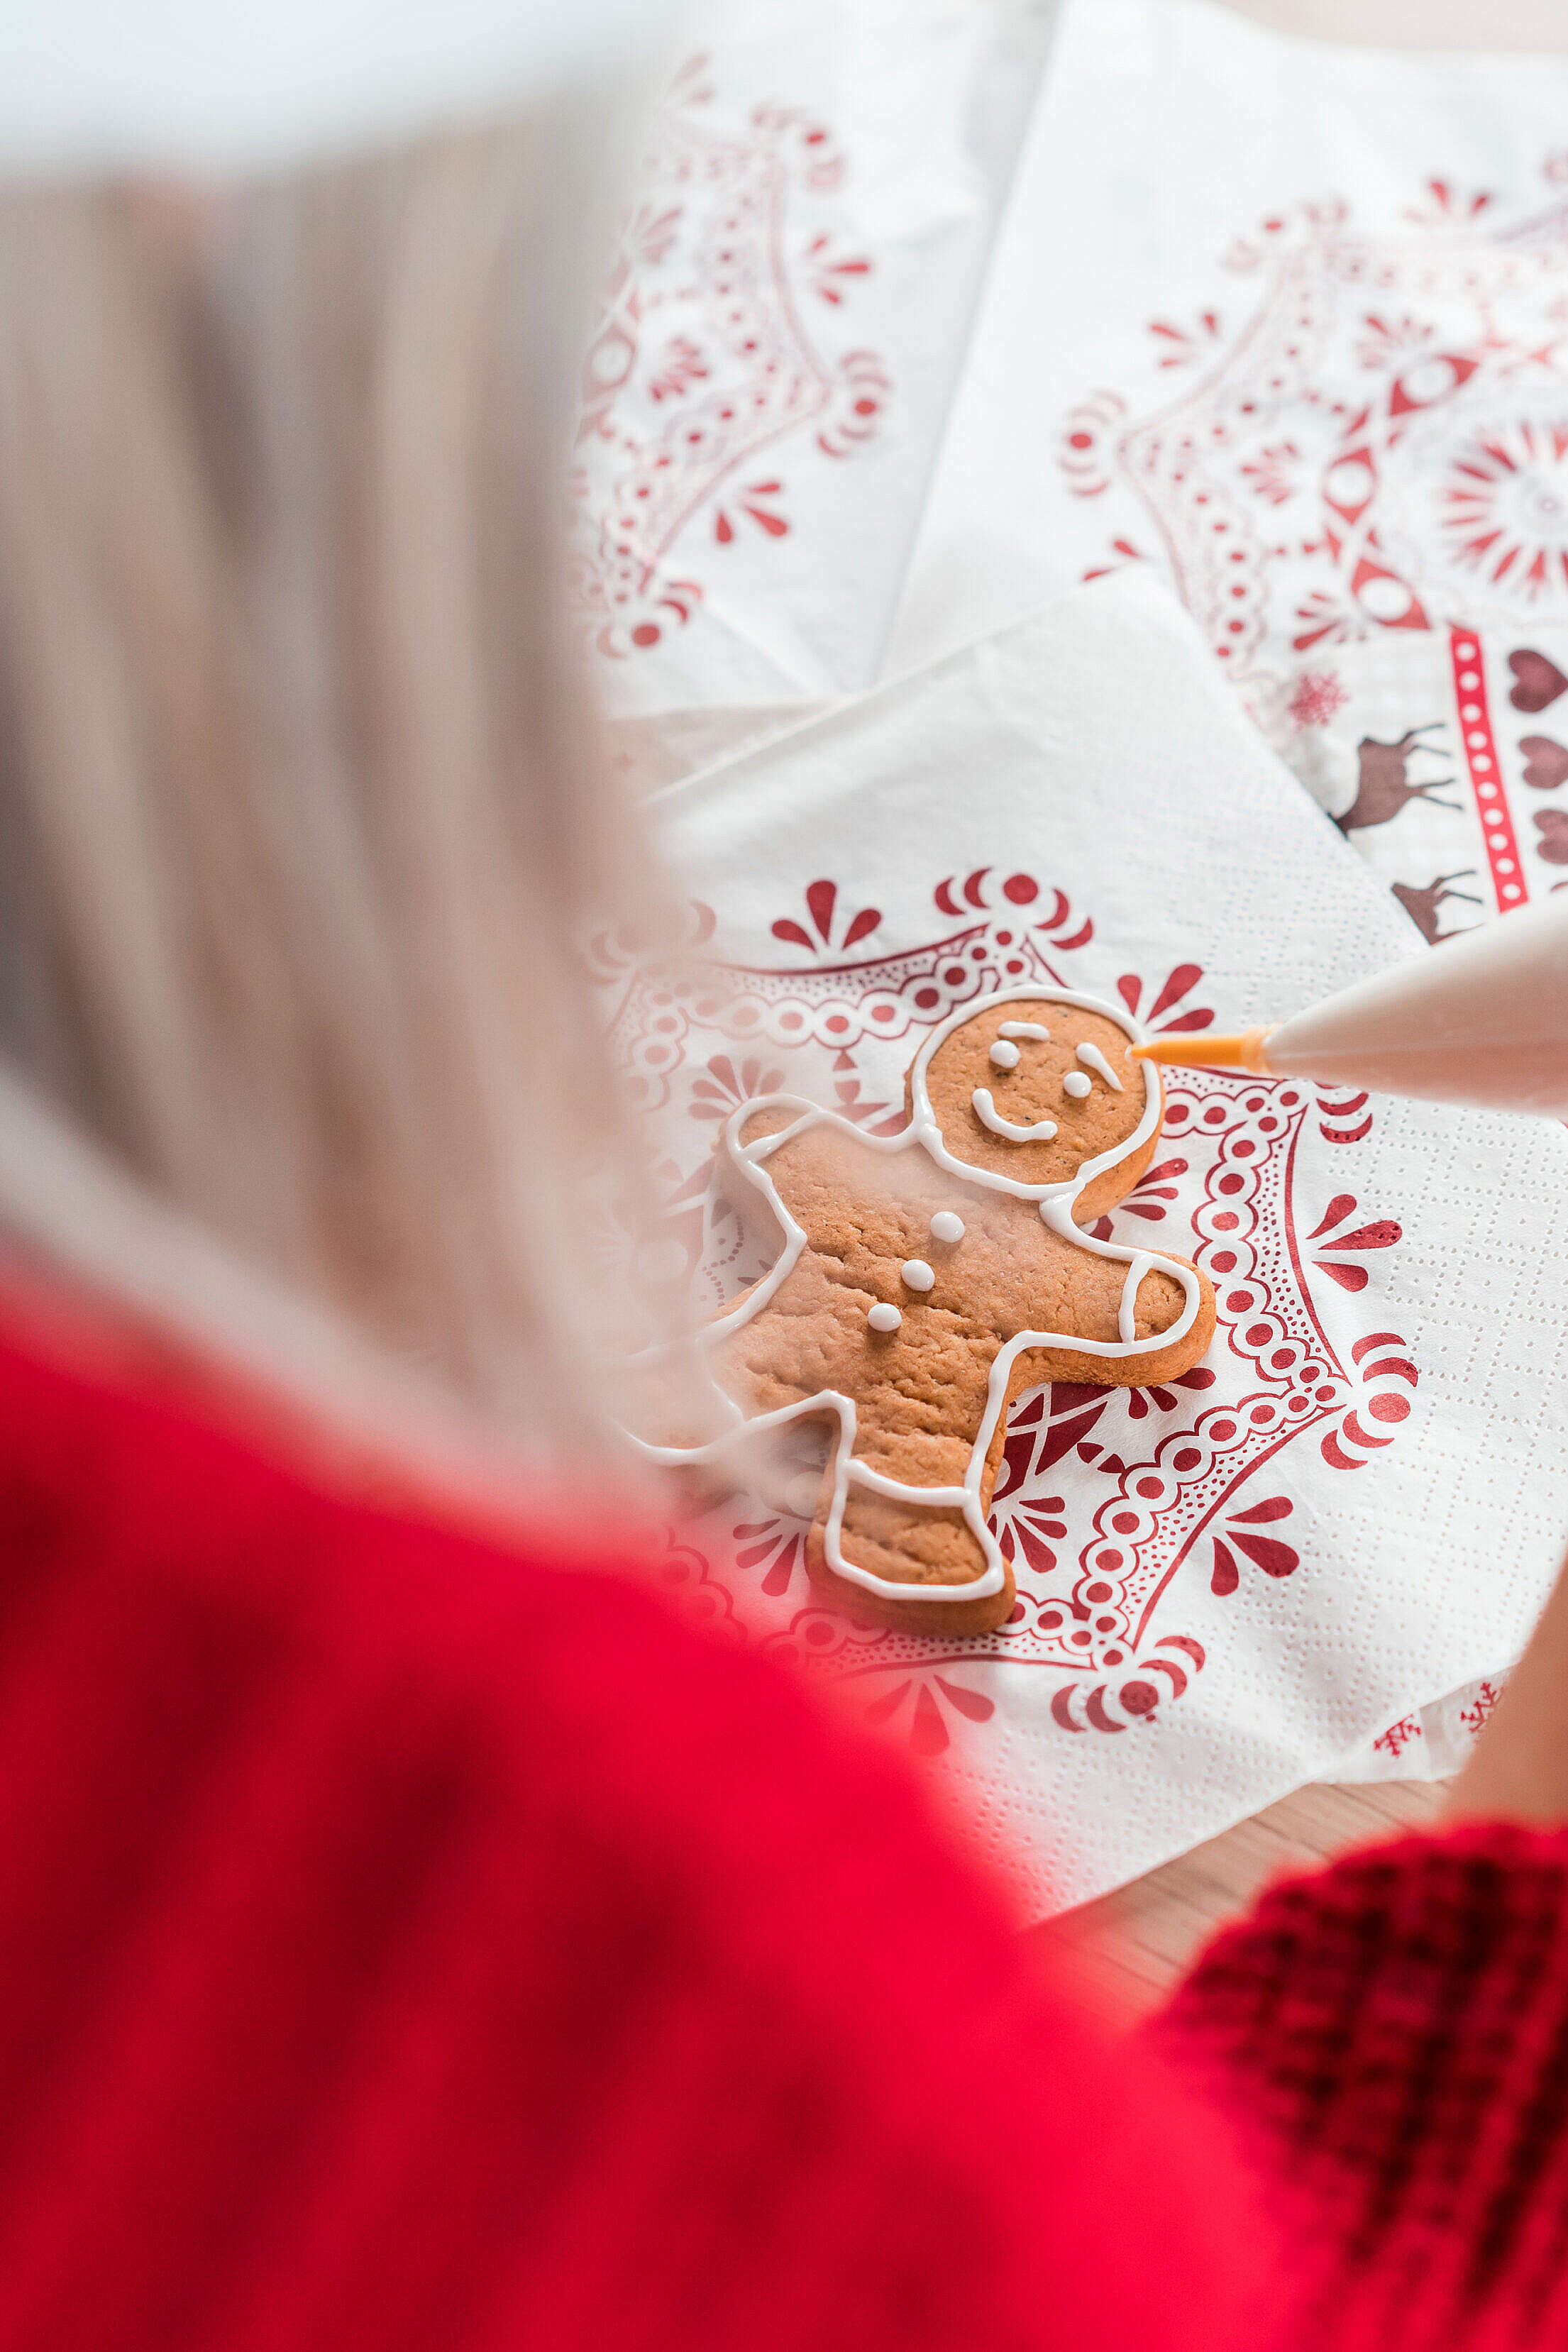 Christmas Gingerbread Man Vertical Free Stock Photo